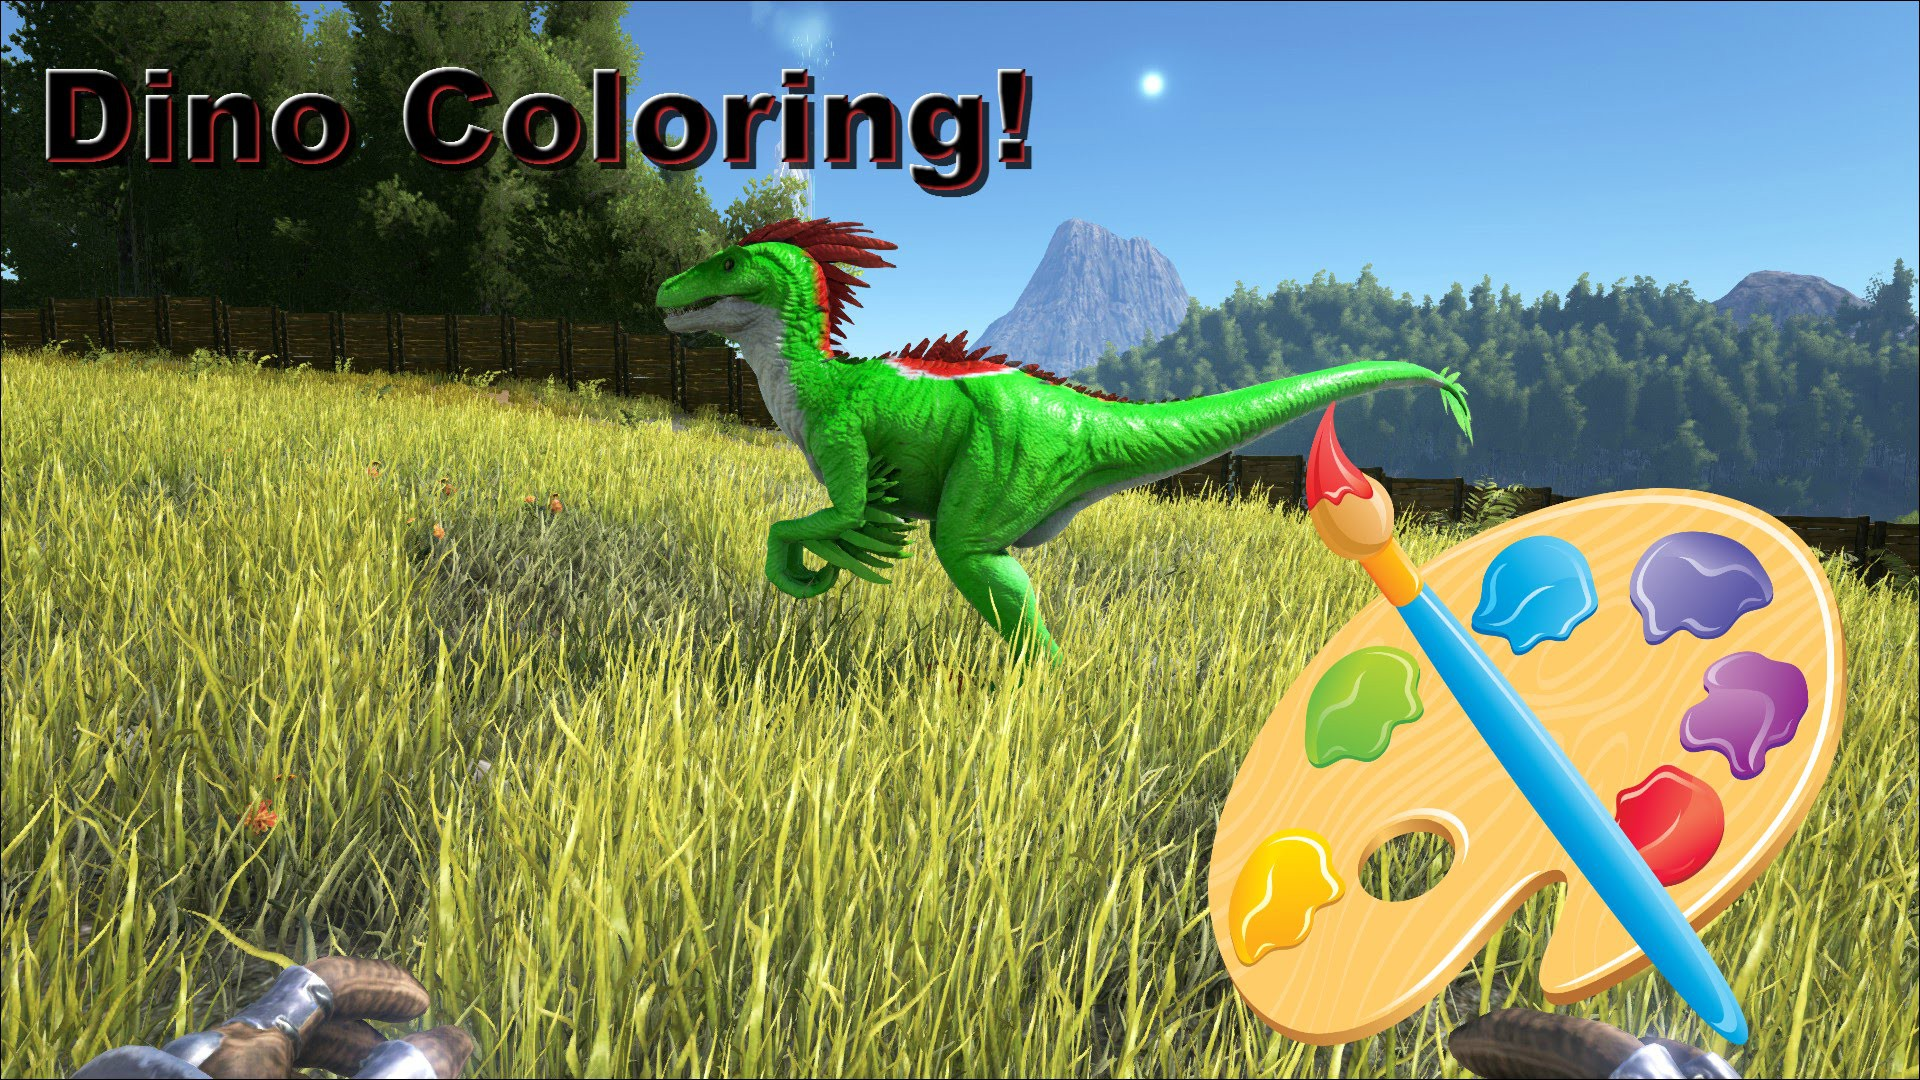 dino-coloring-commands-ark-of-dino-coloring-commands-ark Dino Coloring Commands Ark Dinosaurs